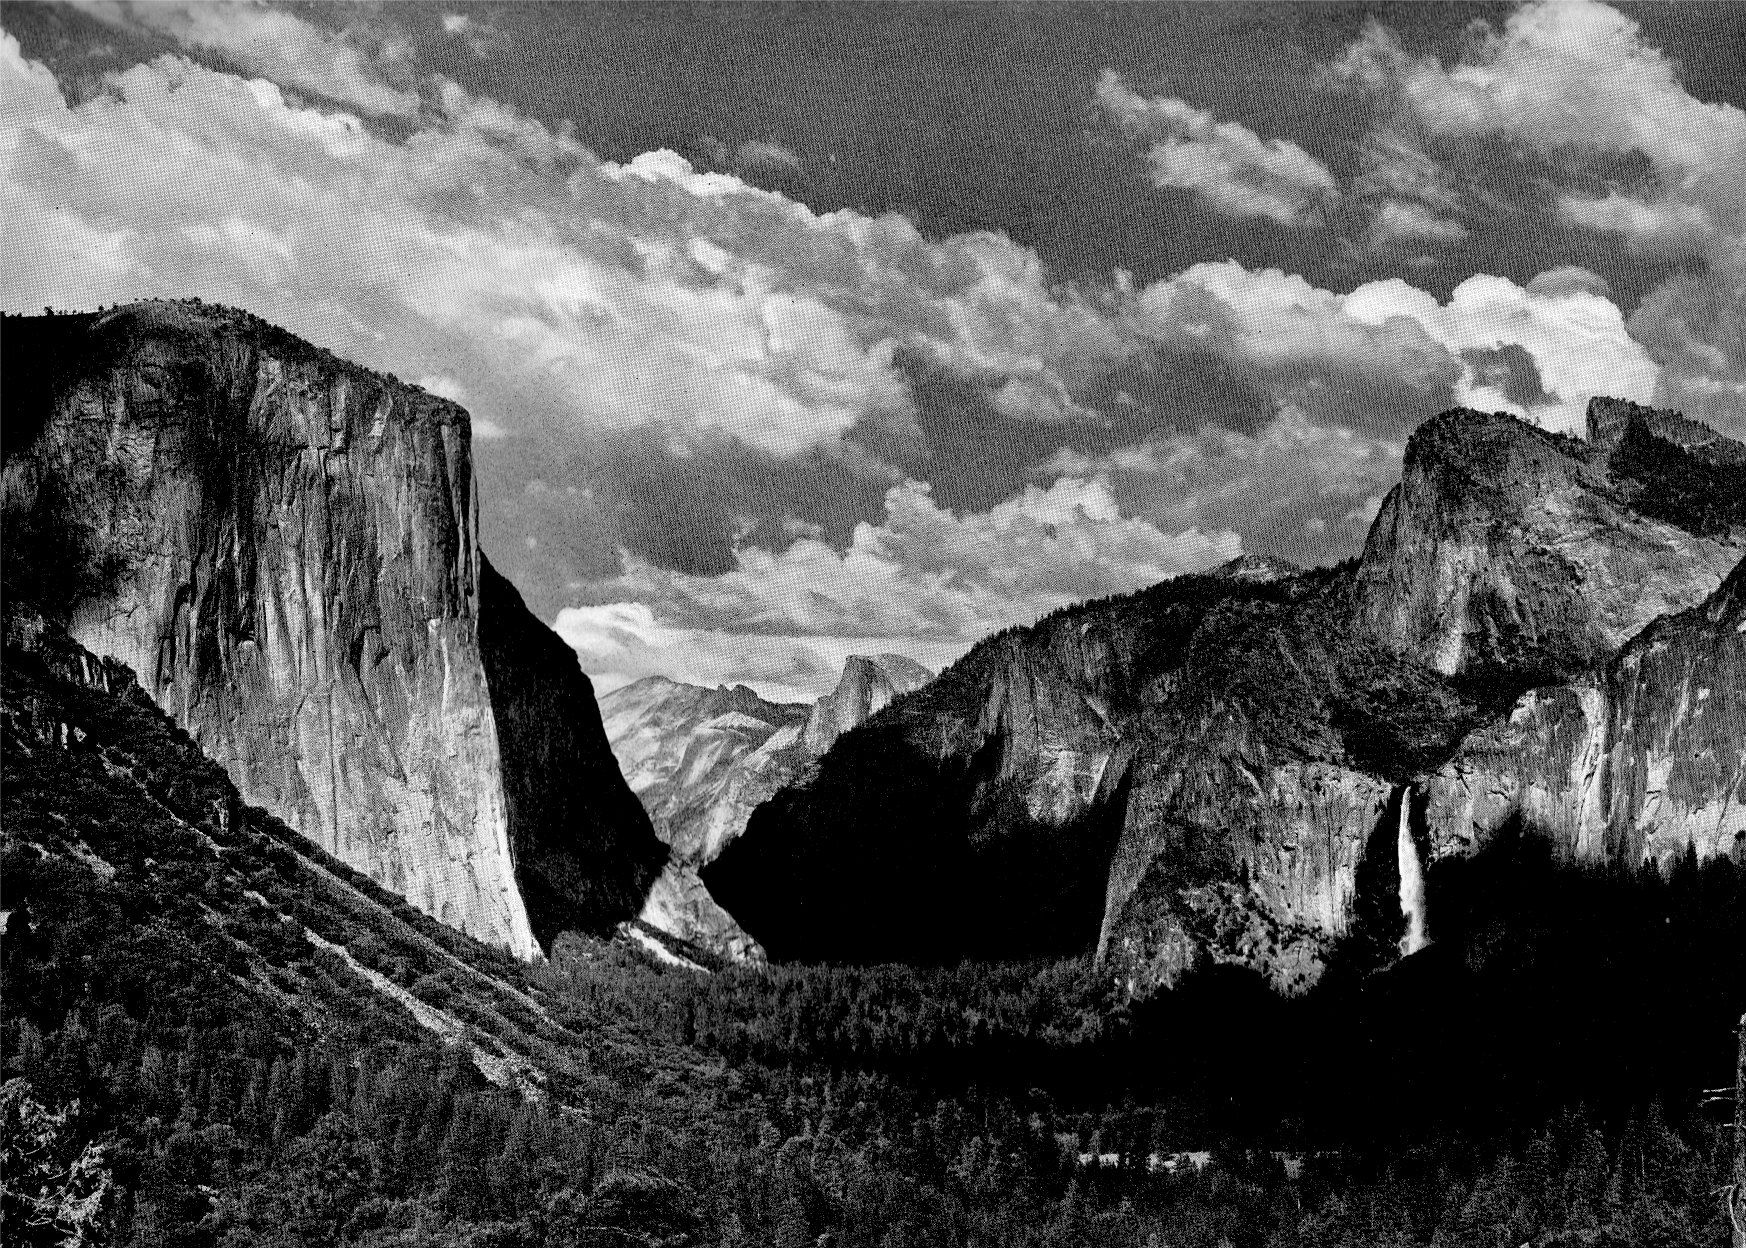 Ansel Adams Photography | The Four Seasons in Yosemite National Park ...